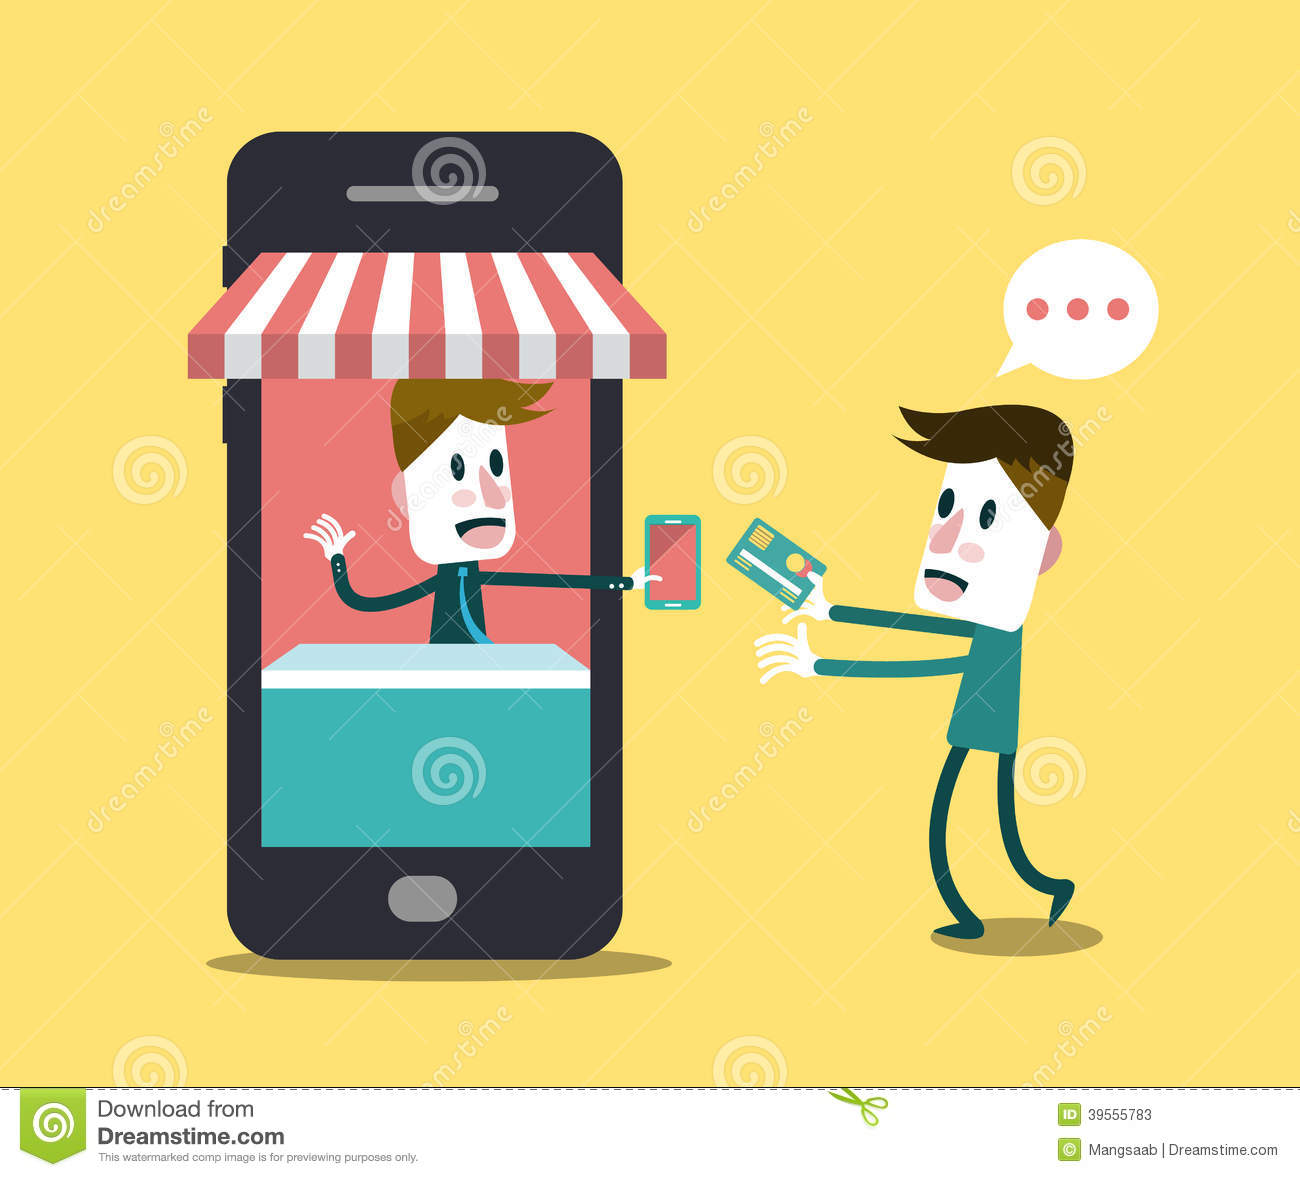 shopping-online-online-store-smart-phone-business-digital-marketing-concept-flat-design-element-vector-illustration-39555783.jpg